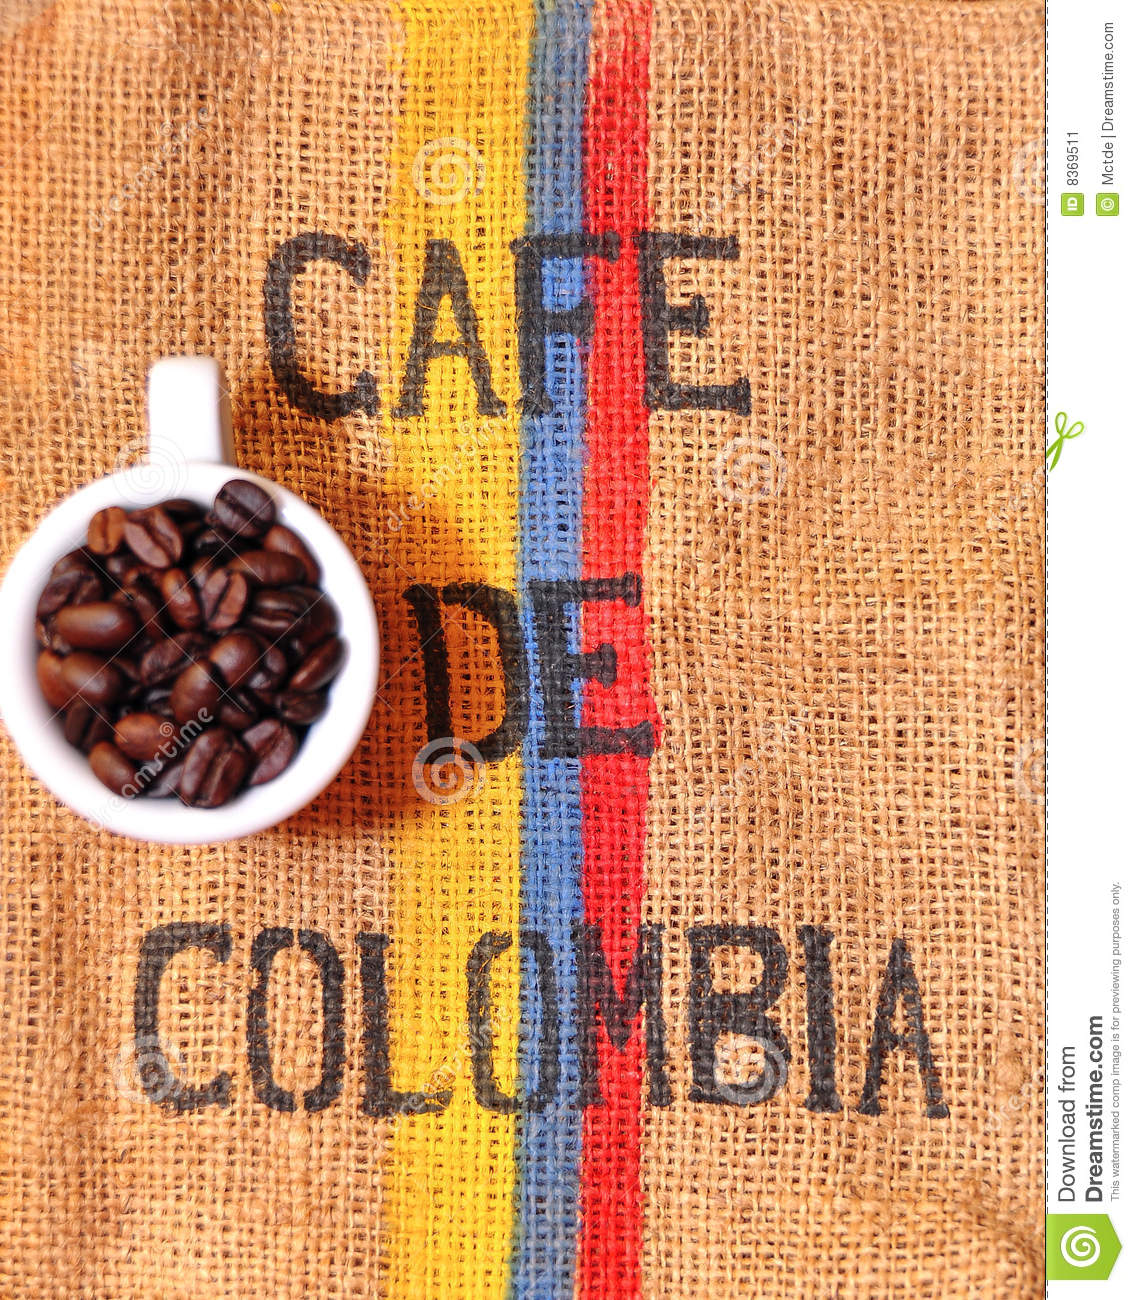 Colombian coffee stock image Image of weave bunch